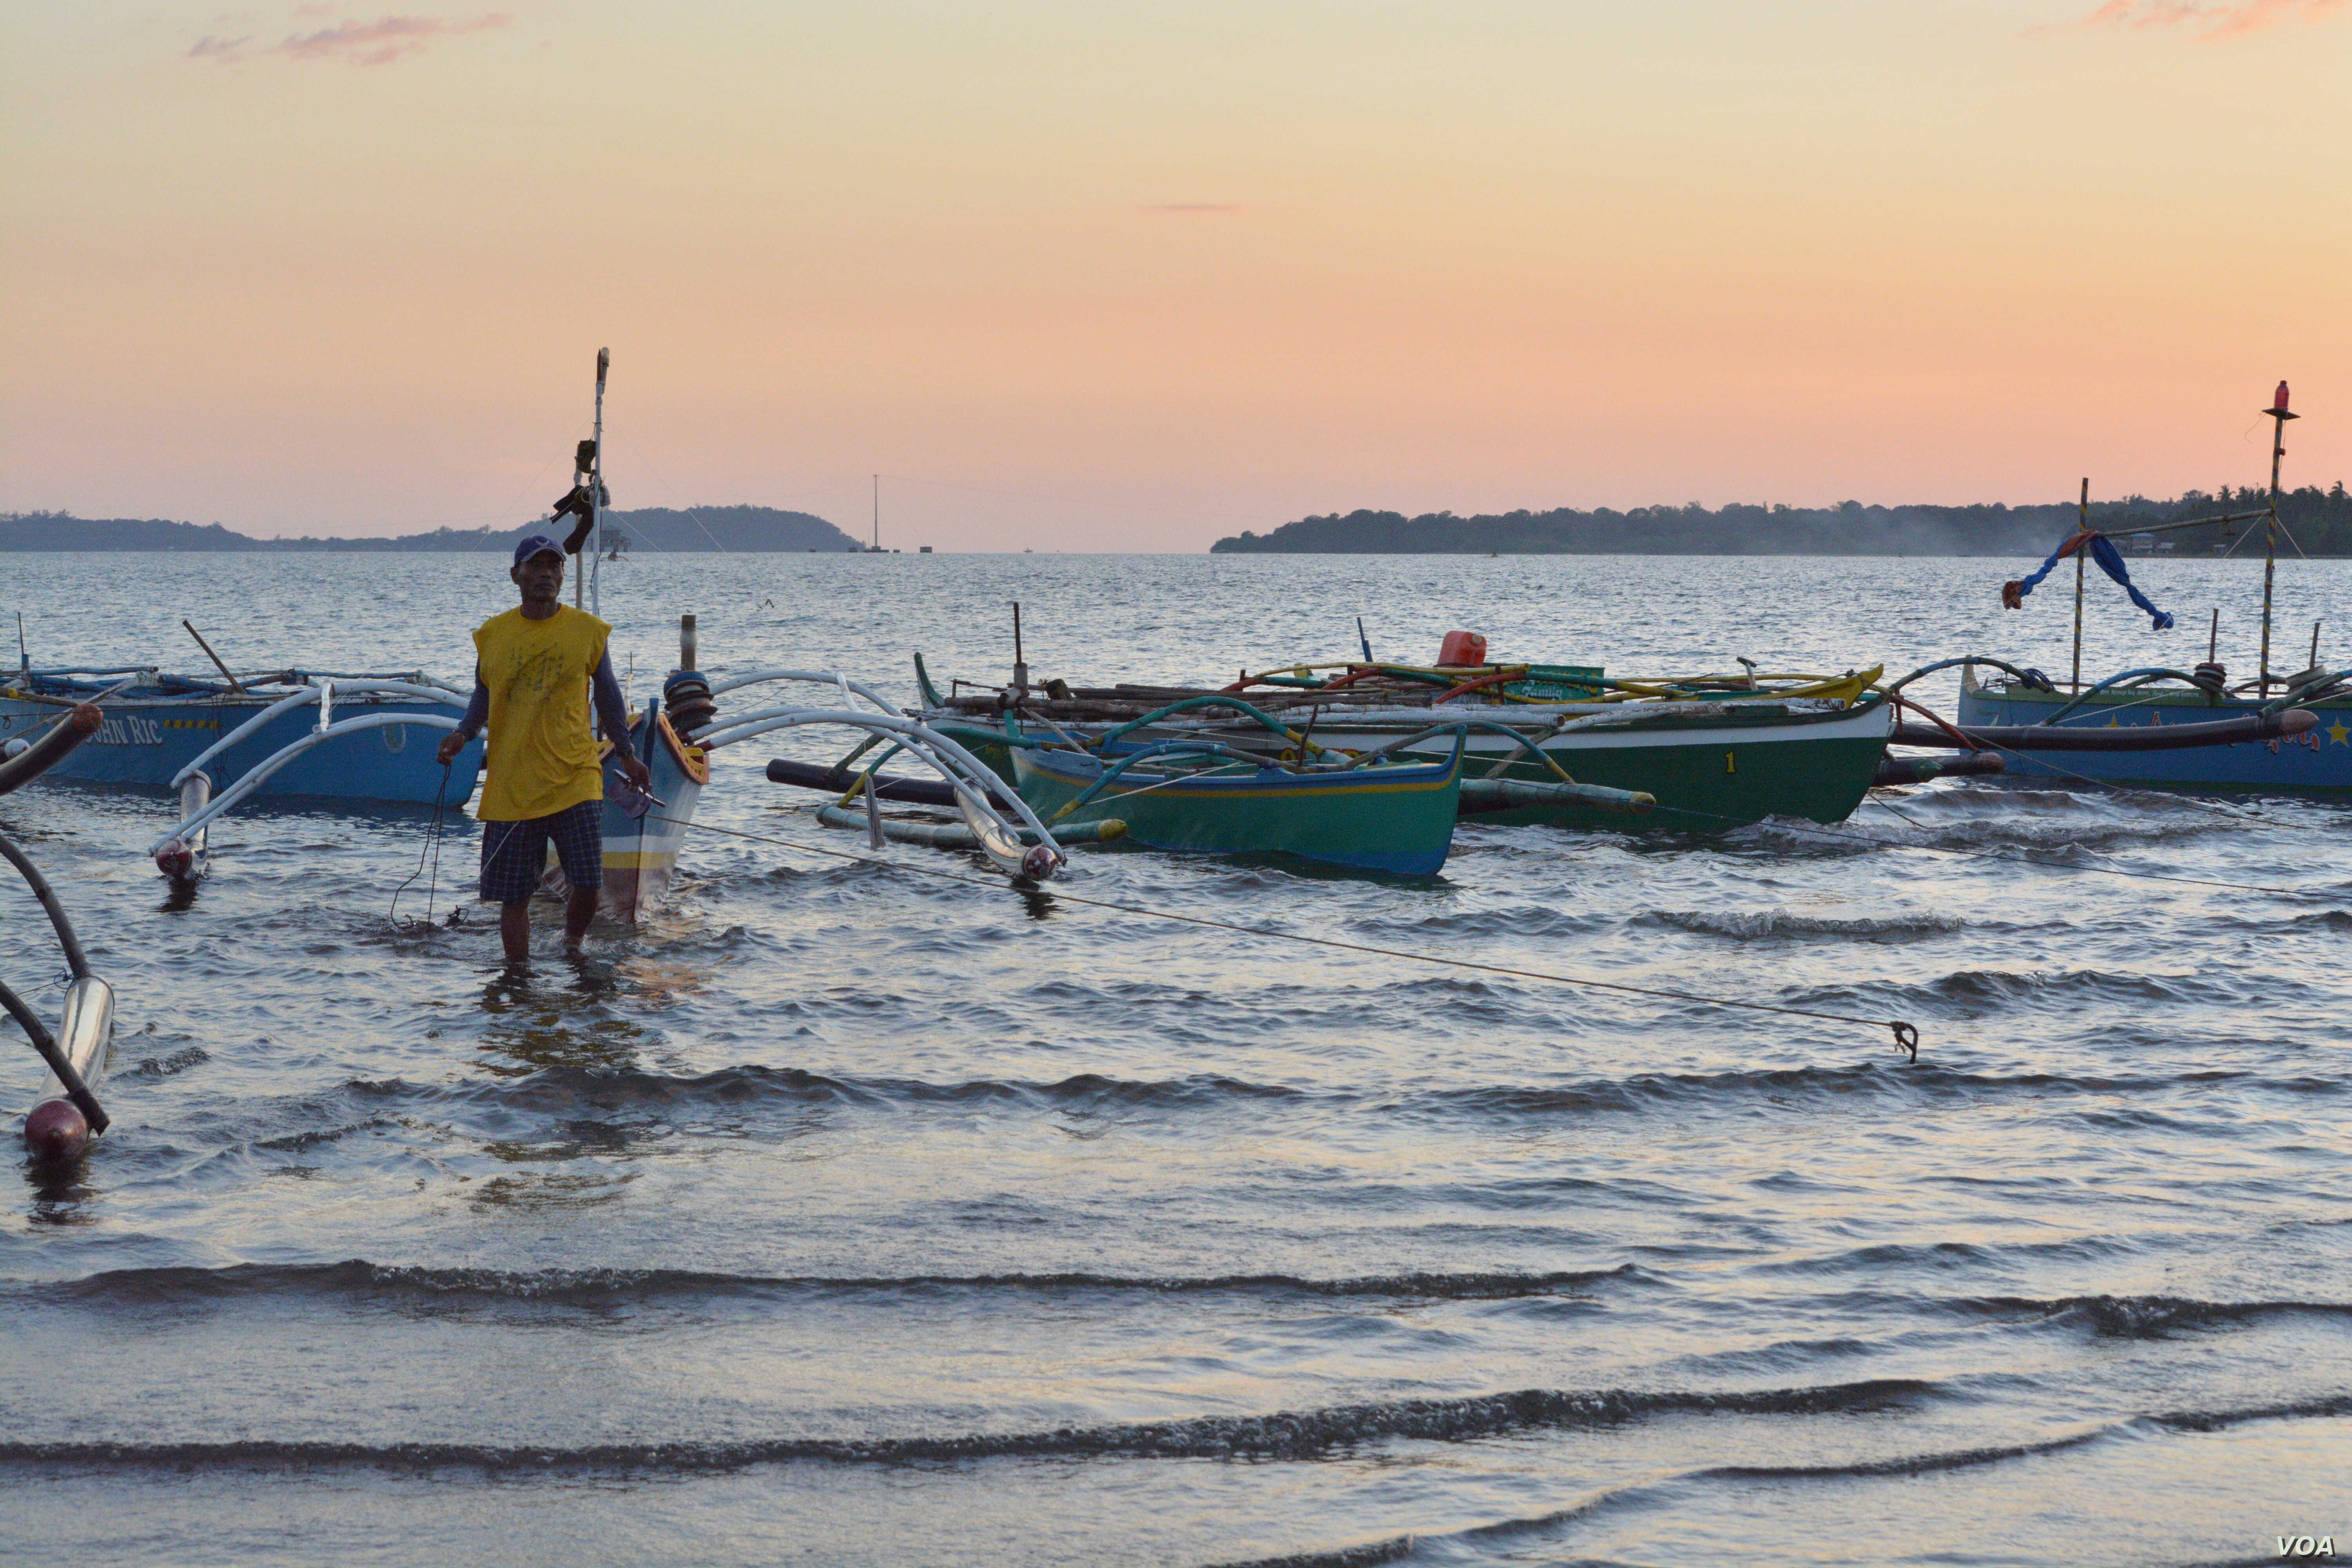 Fisherman Junick Josol starts removing the tow ropes of his tiny boat before heading out about 24 kilometers into the South China Sea to fish, Masinloc, Philippines, Nov. 8, 2015.  (S. Orendain/VOA)